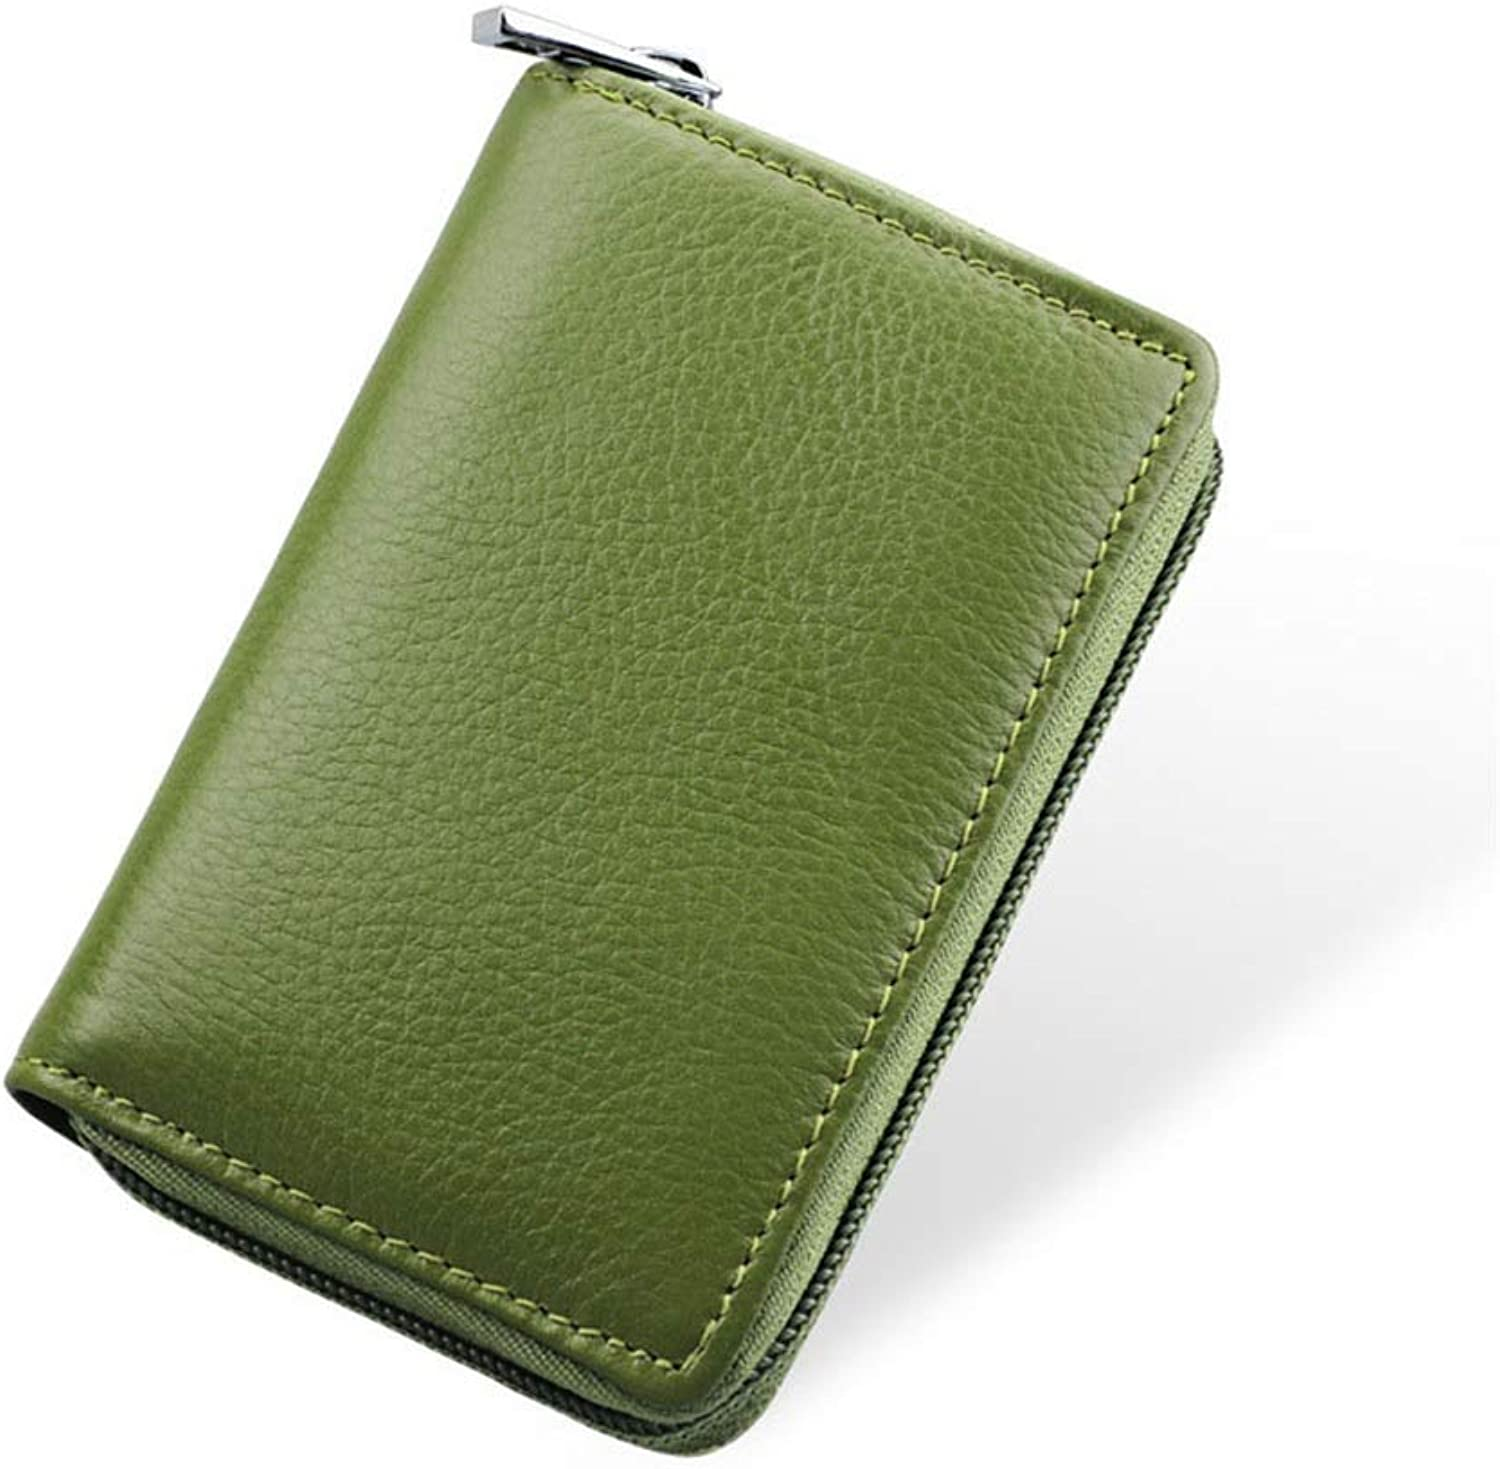 Sturdy Women's Credit Card Case Wallet Zipper Card Holder Purse Large Capacity (color   Green)